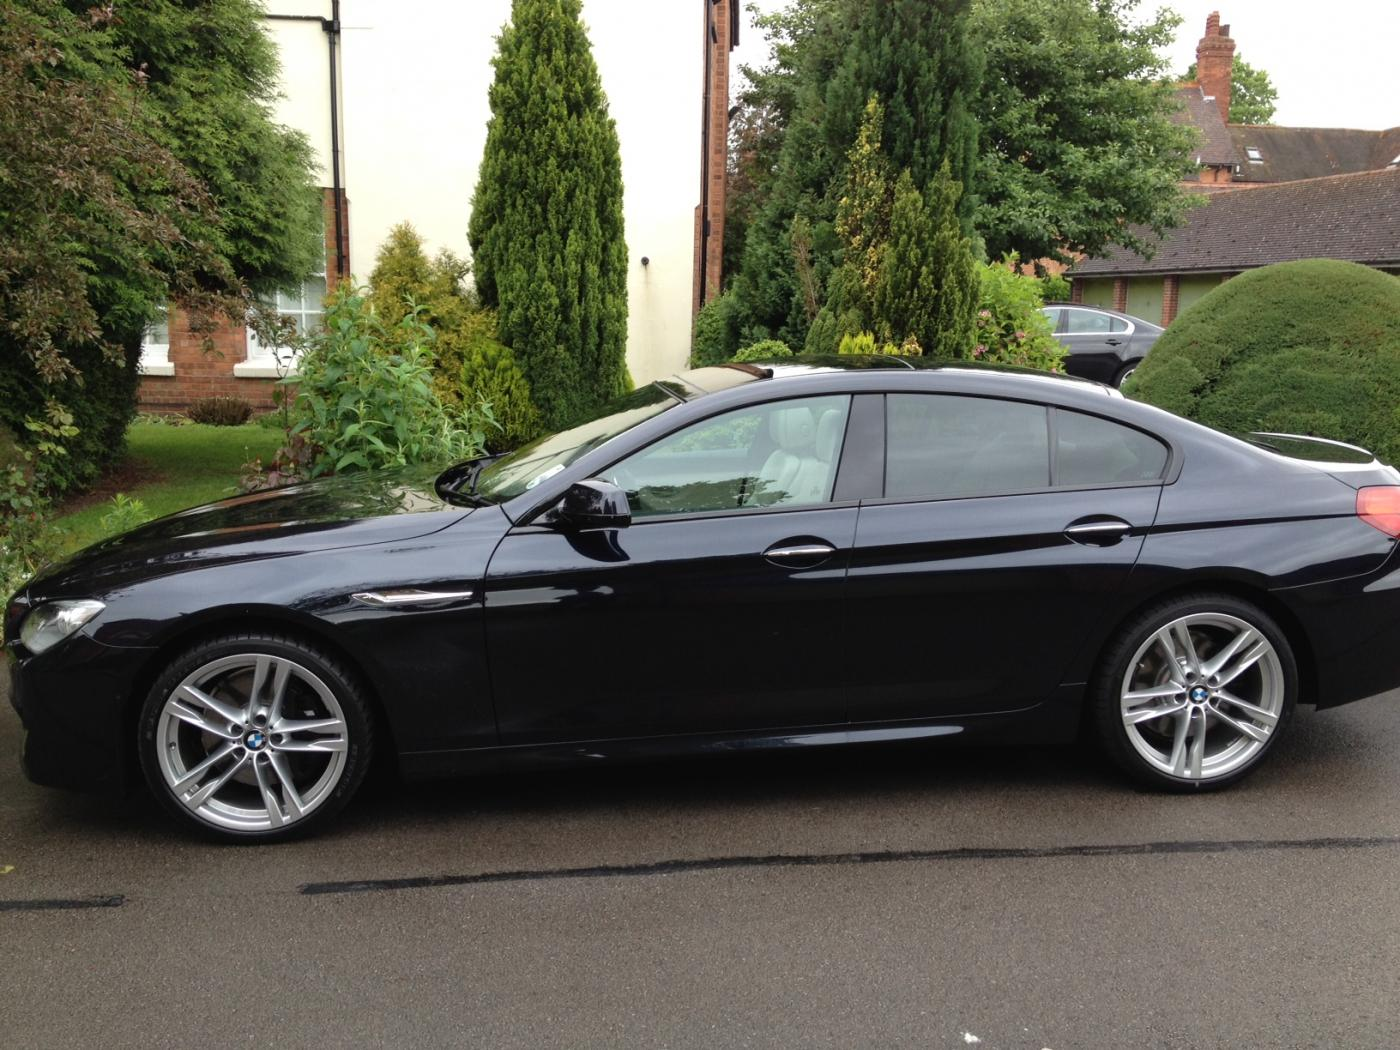 Carbon Black 640d Gran Coupe M Sport